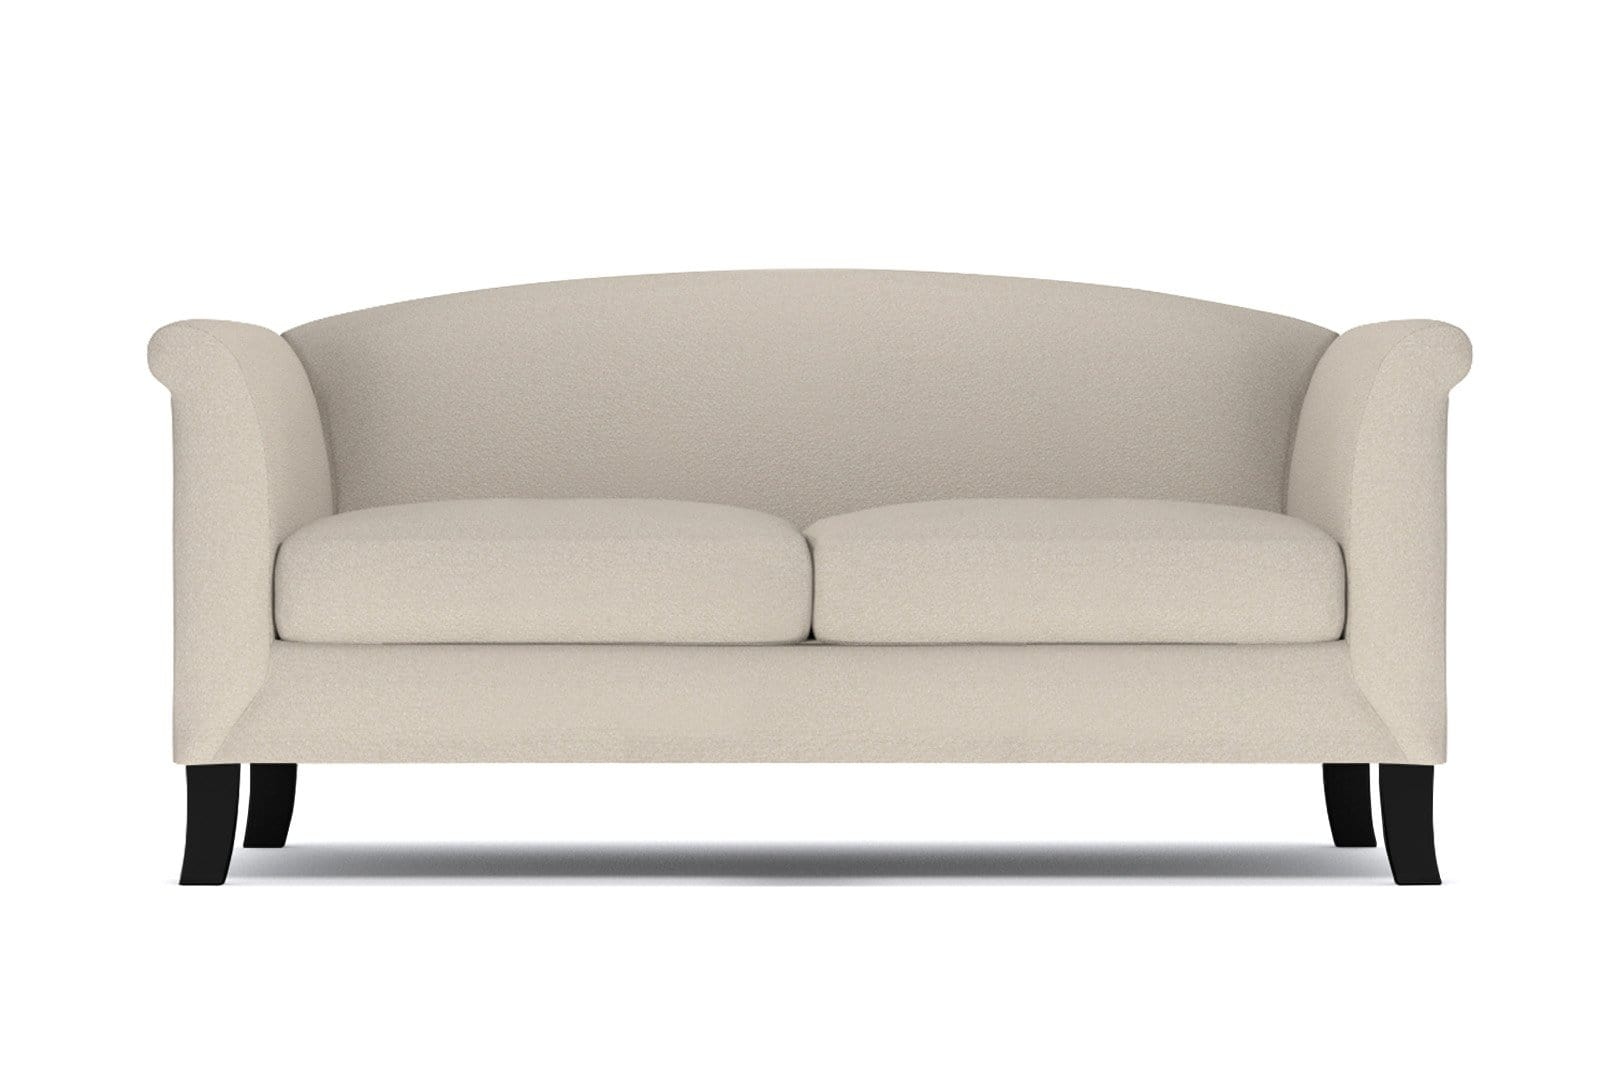 Albright Apartment Size Sofa - Beige - Small Space Modern Couch Made in the USA - Sold by Apt2B